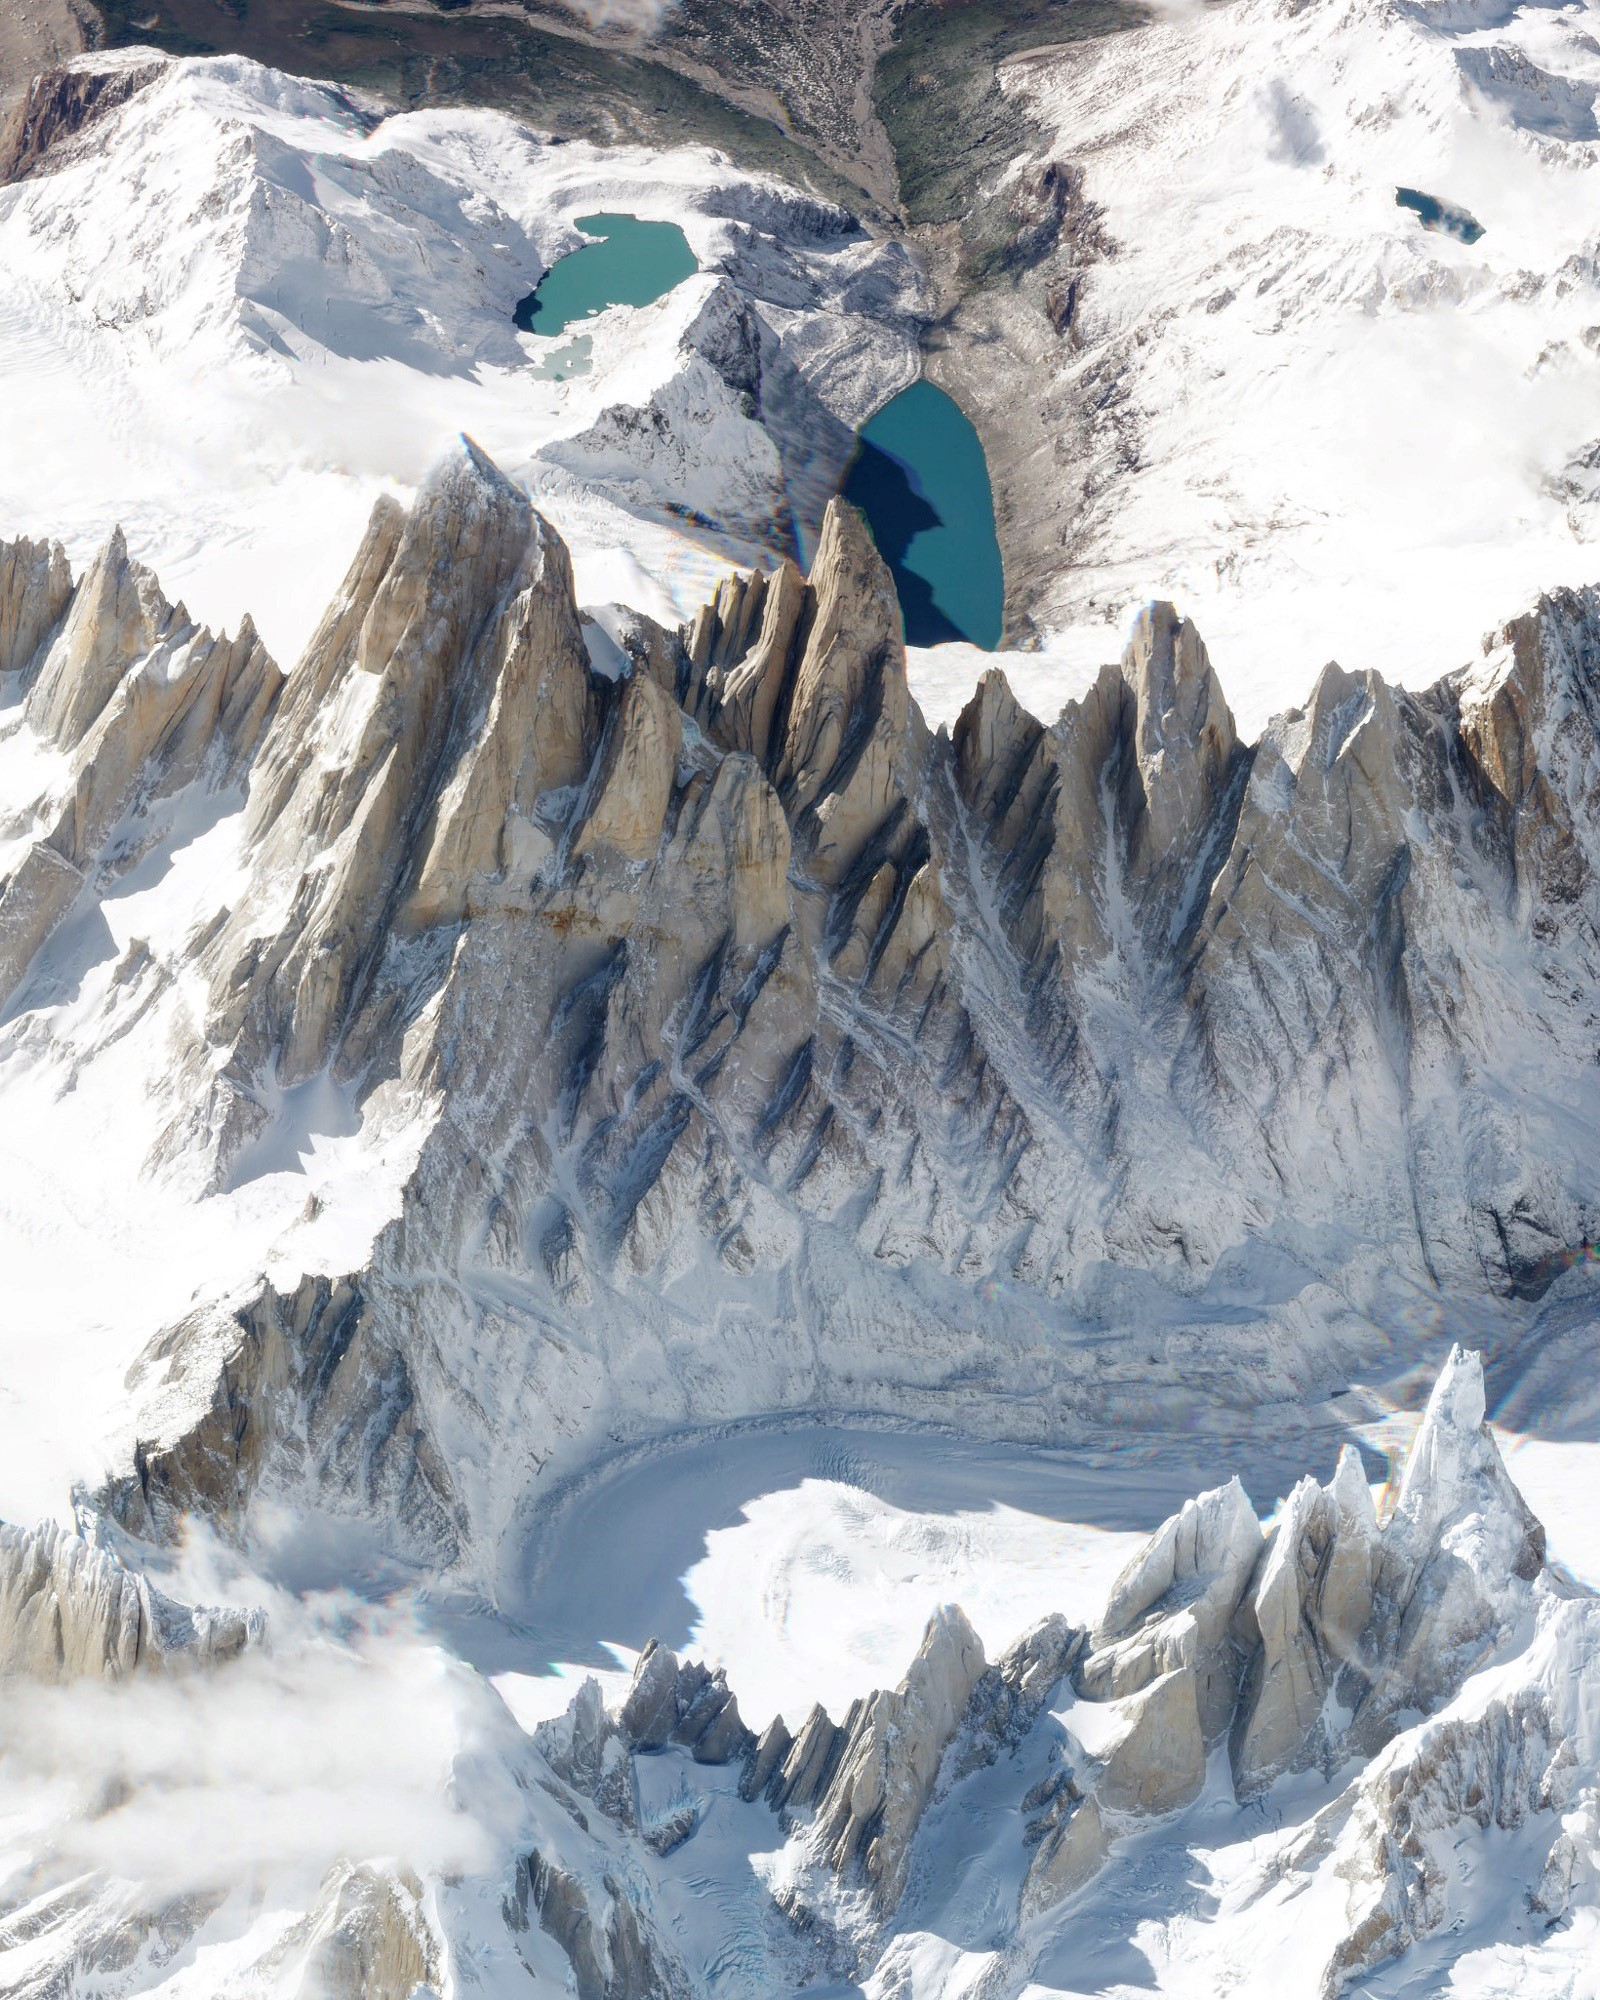 """Check out this amazing view of Monte Fitz Roy — a mountain in the Patagonia Region on the border of Argentina and Chile — captured by a Planet Labs satellite at a low angle. With an elevation of 11,171 ft (3,405 m) and sheer granite faces, it is one of the most technically challenging mountains to ascent on Earth. Monte Fitz Roy is also the inspiration for the Patagonia clothing company's logo.  49°16'17.1""""S, 73°02'33.9""""W  Source imagery: Planet Labs"""